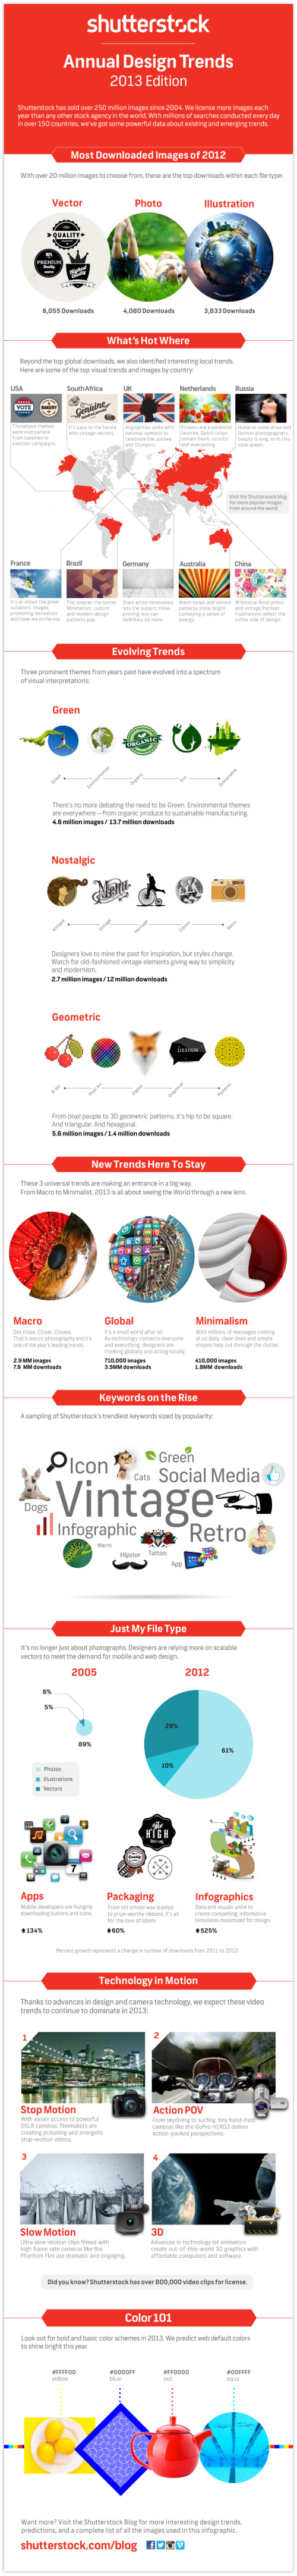 Shutterstock: Annual Design Trends 2013 Edition infographic